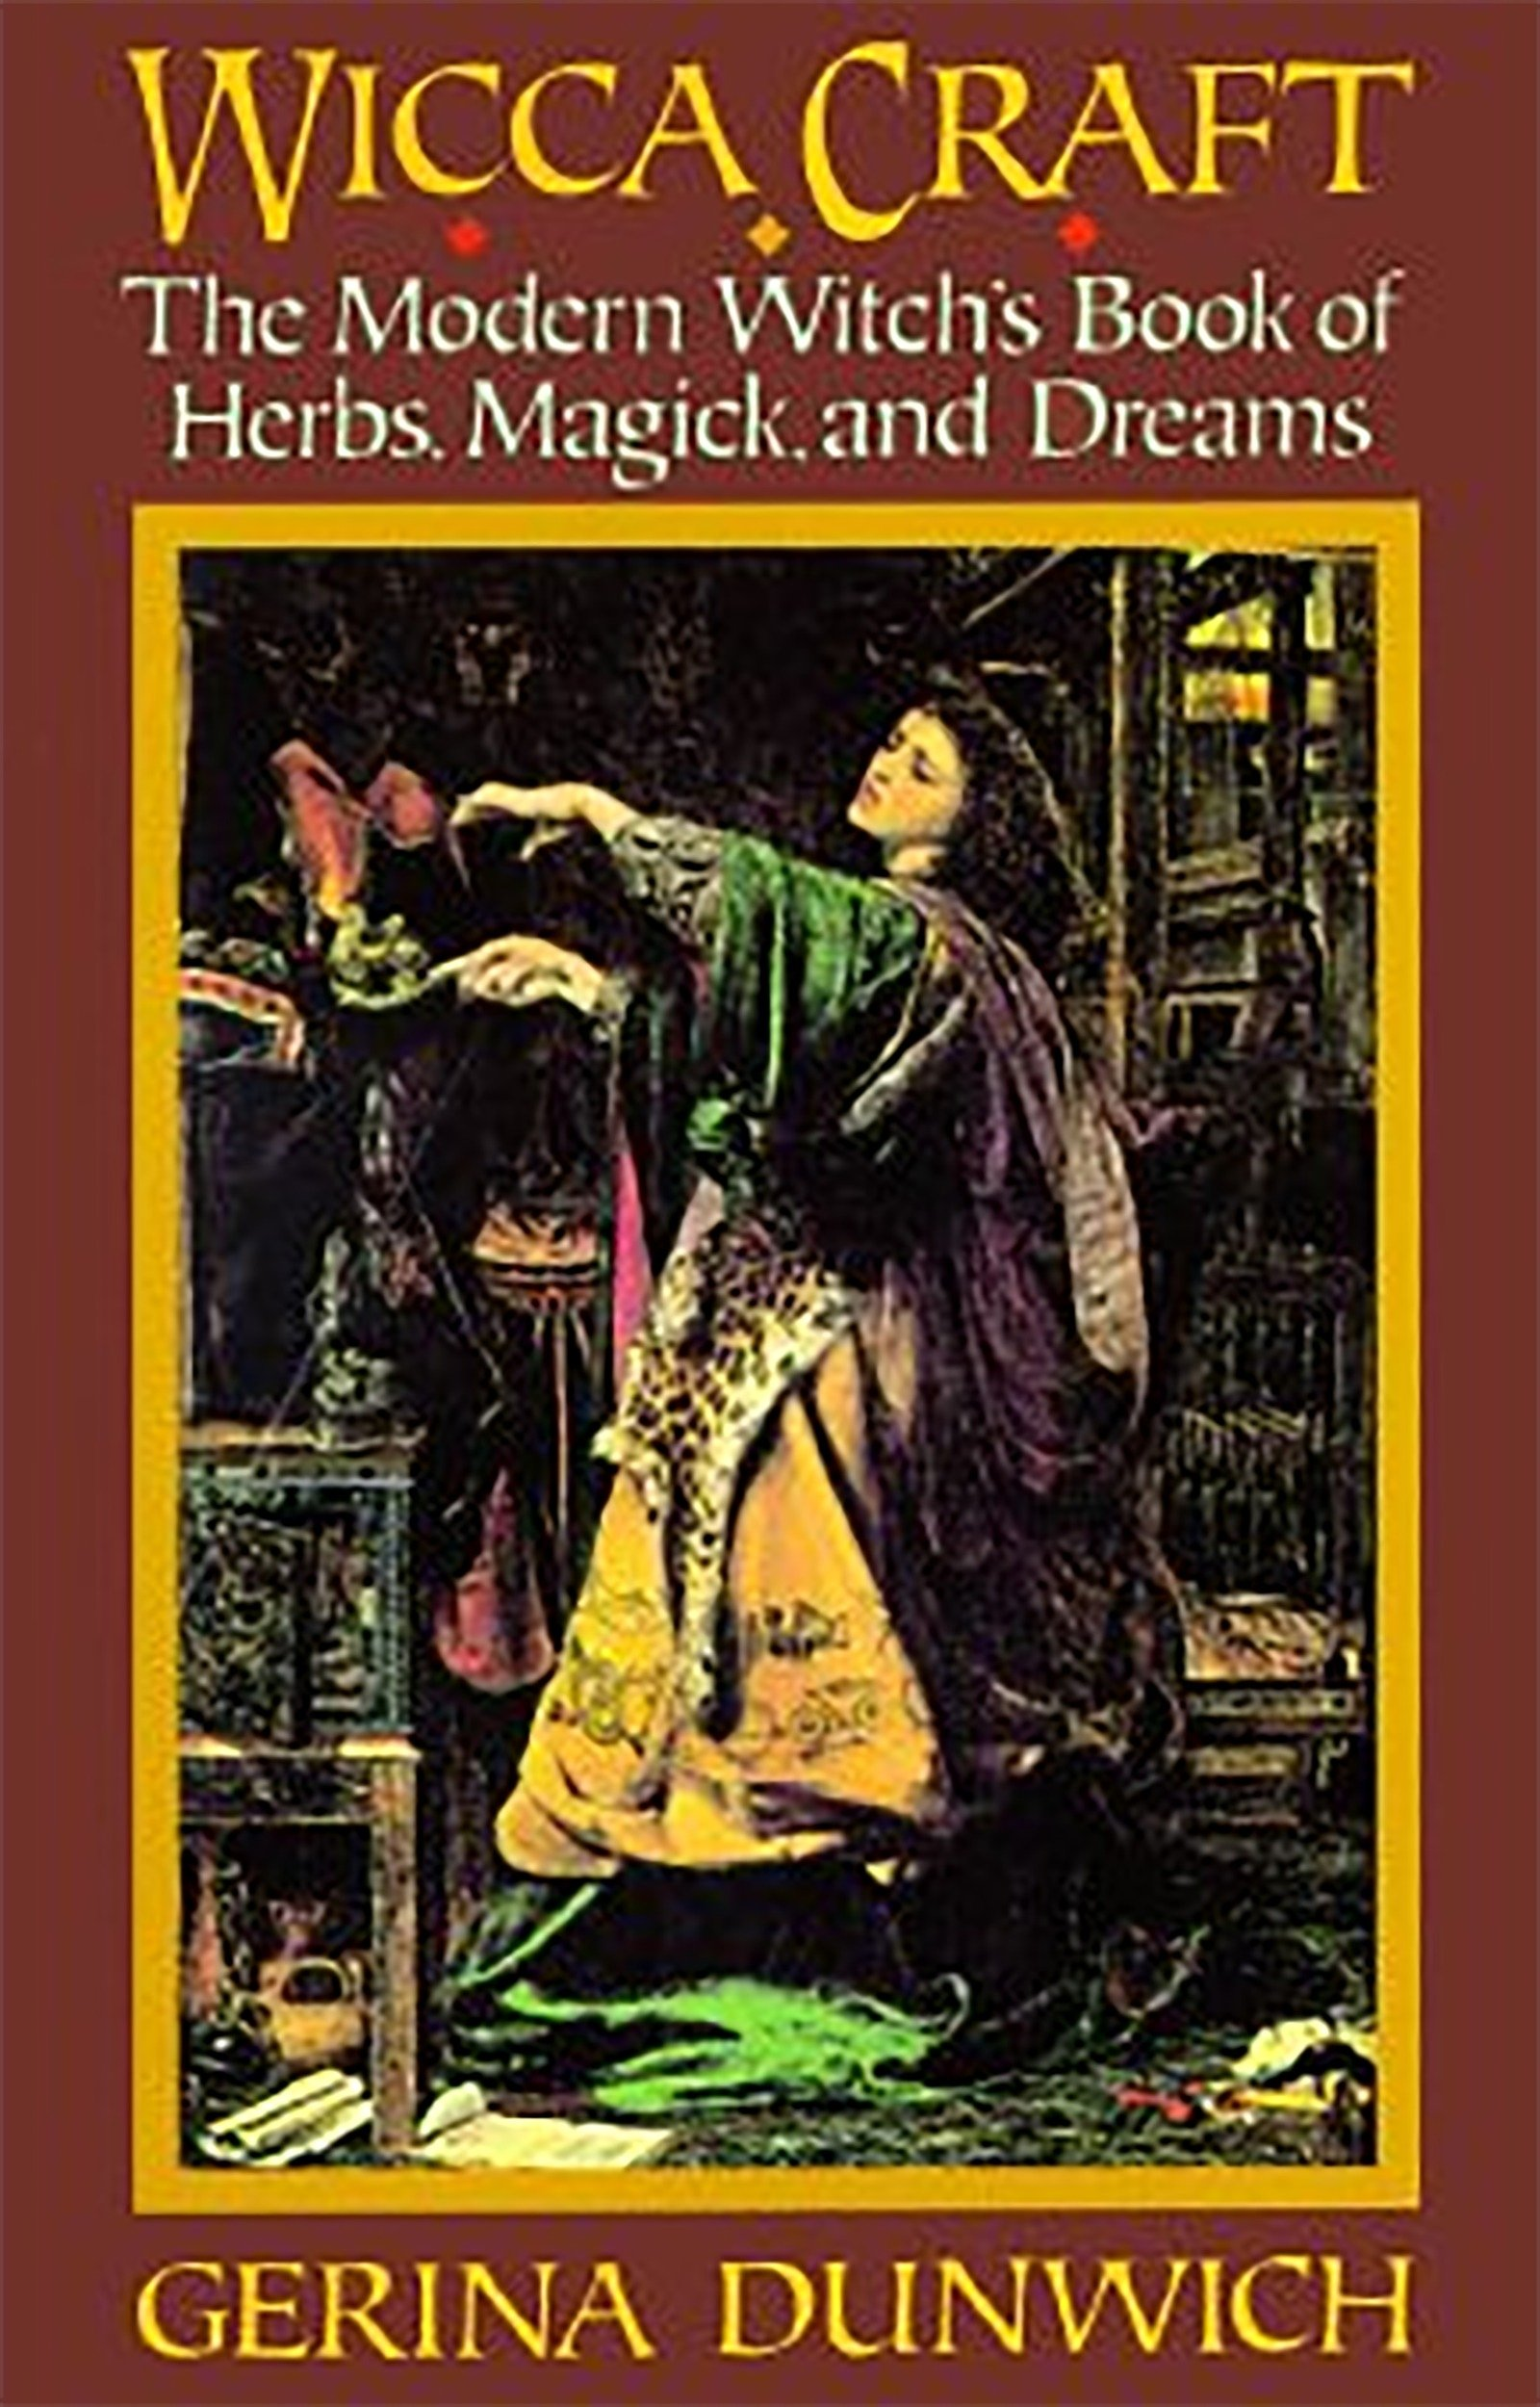 Wicca Craft The Modern Witches Book Of Herbs Magick And Dreams